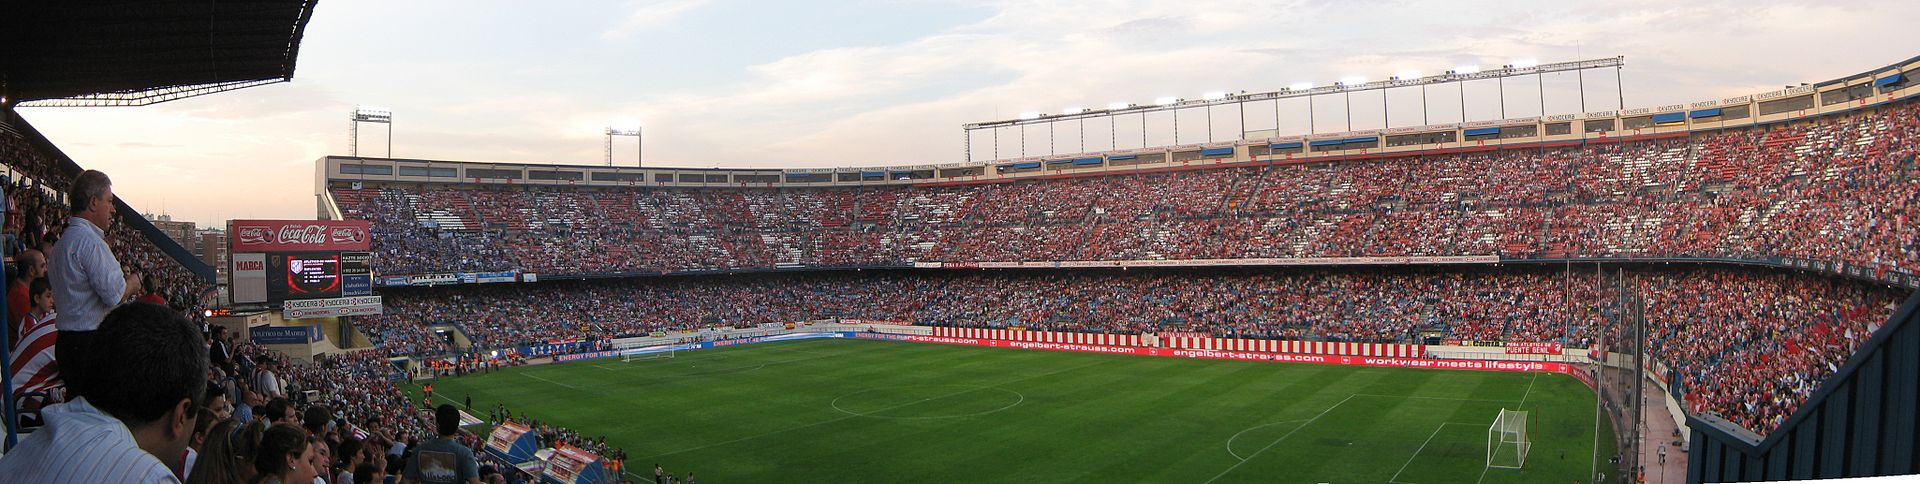 Estadio-Vicente-Calderón